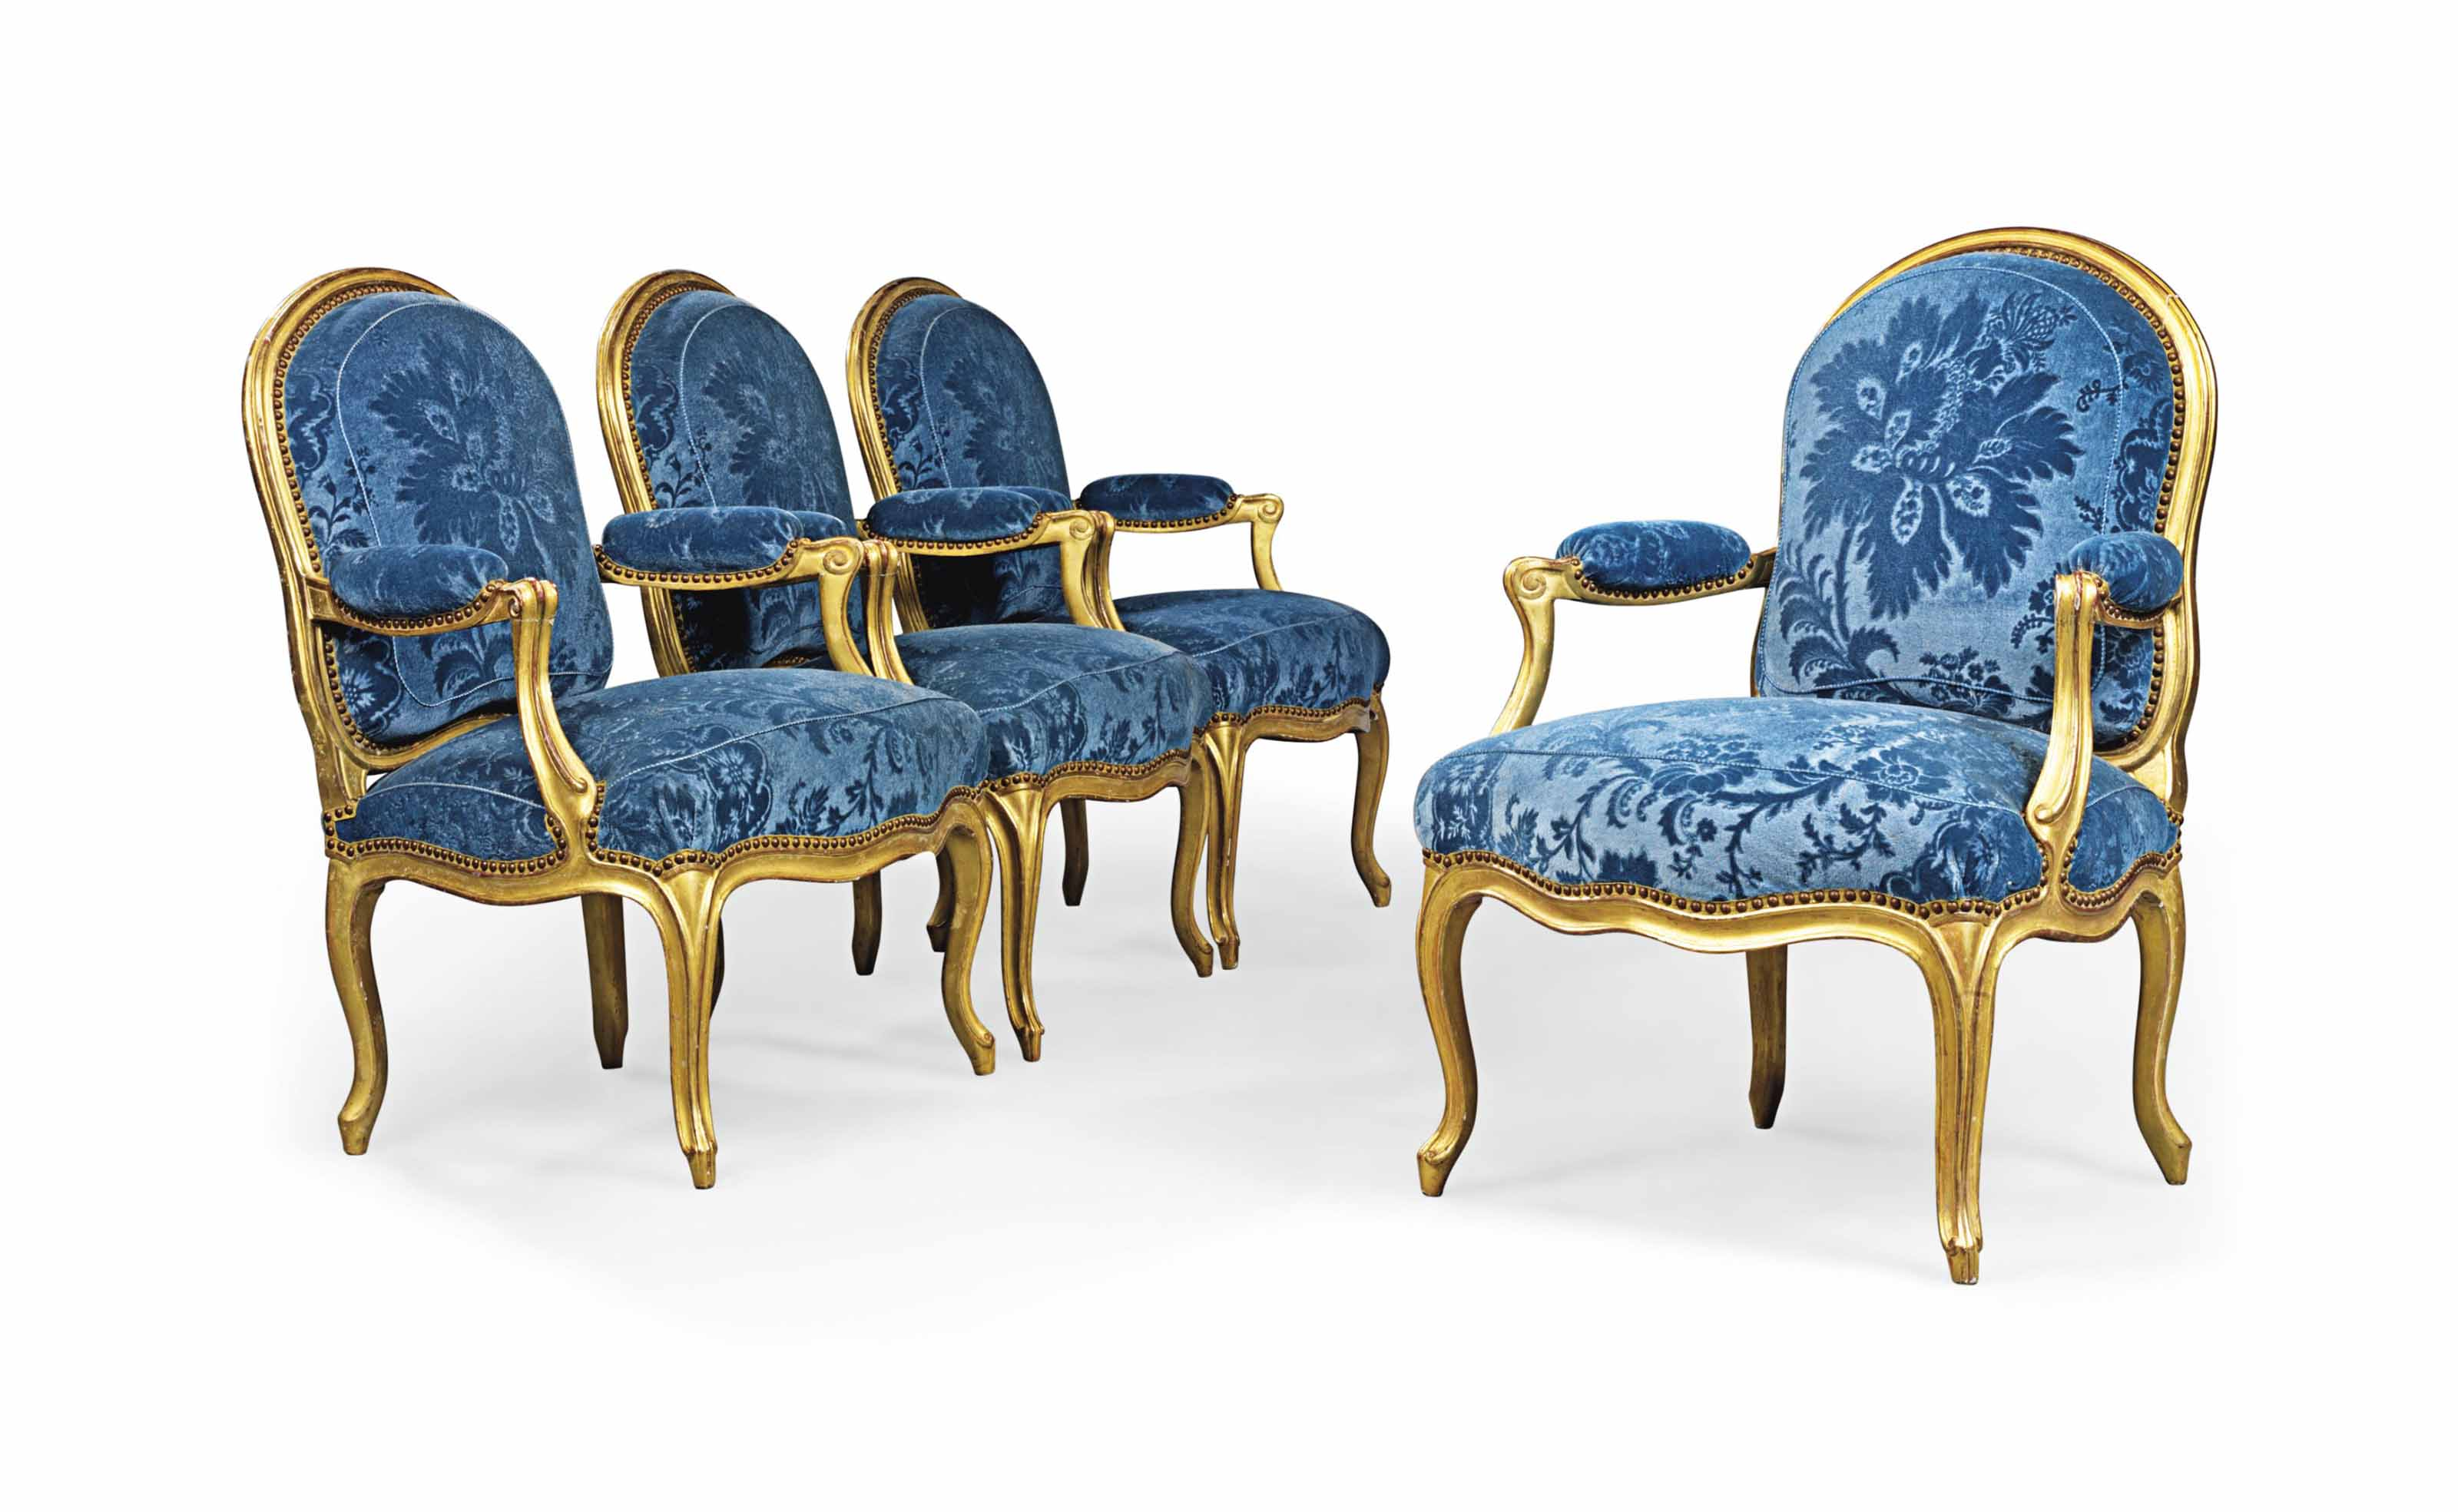 4 Fauteuils Louis Xv A Set Of Four Louis Xv Giltwood Fauteuils By Philippe